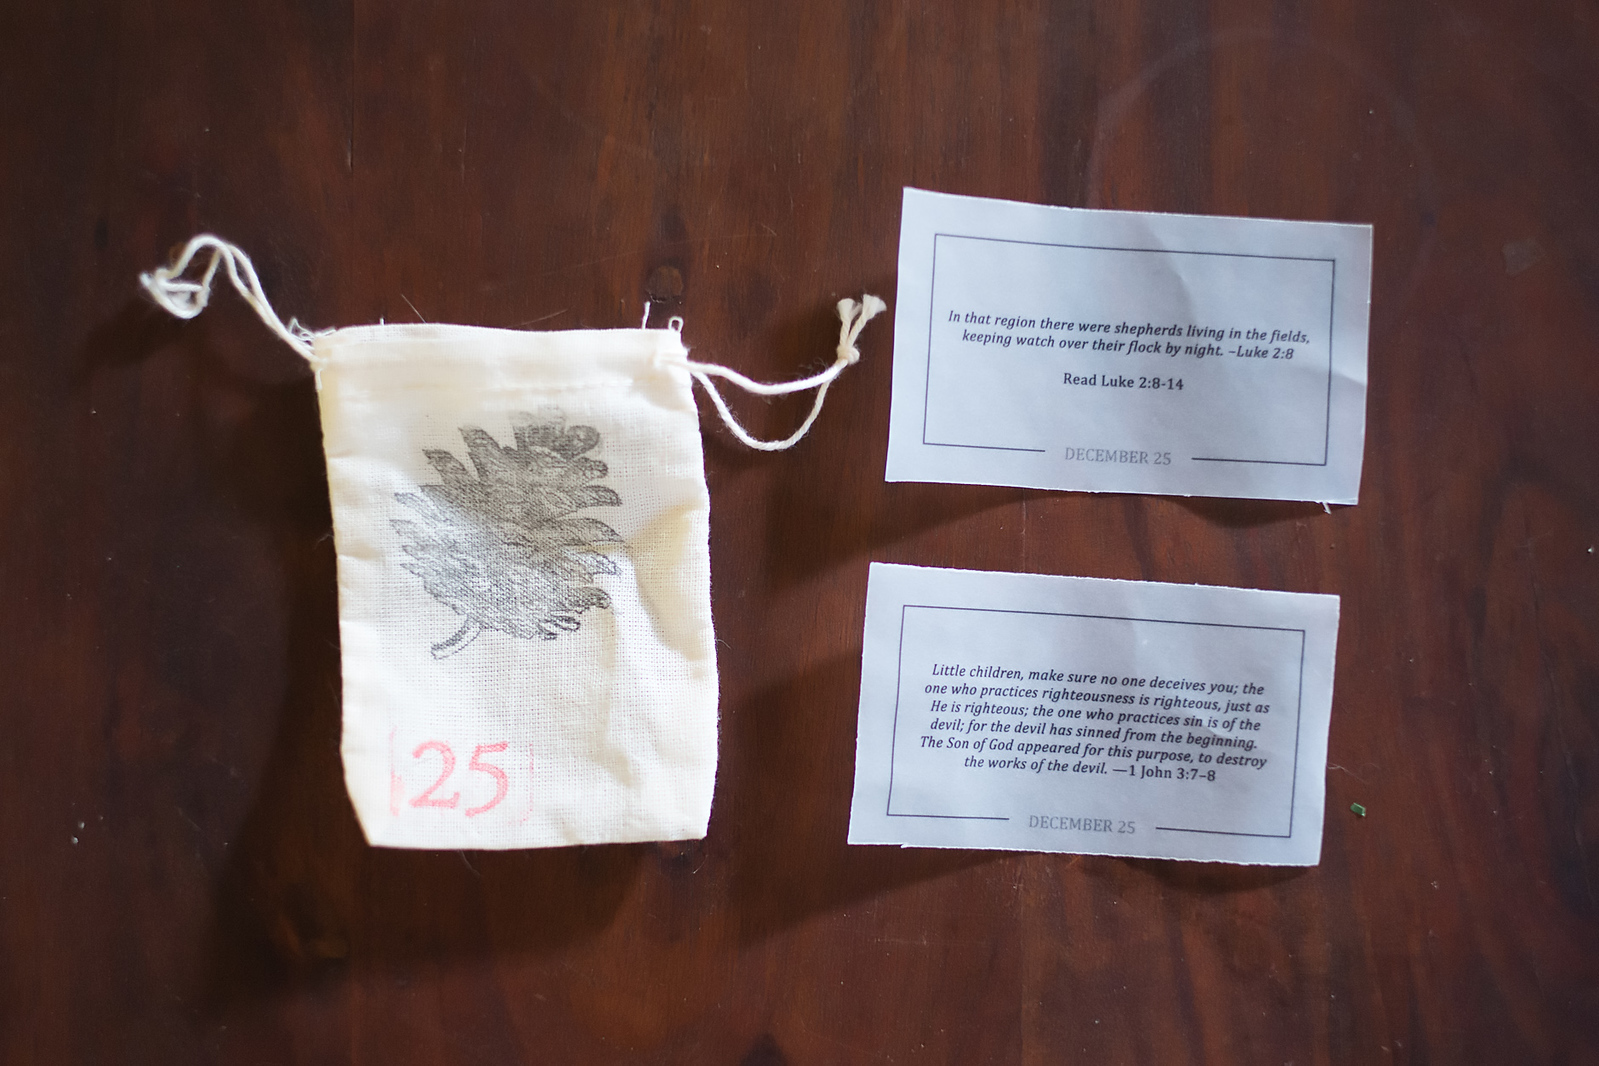 Number and greenery stamps create beautiful decorations on muslin bags. Verses printed on Vellum complete the bags